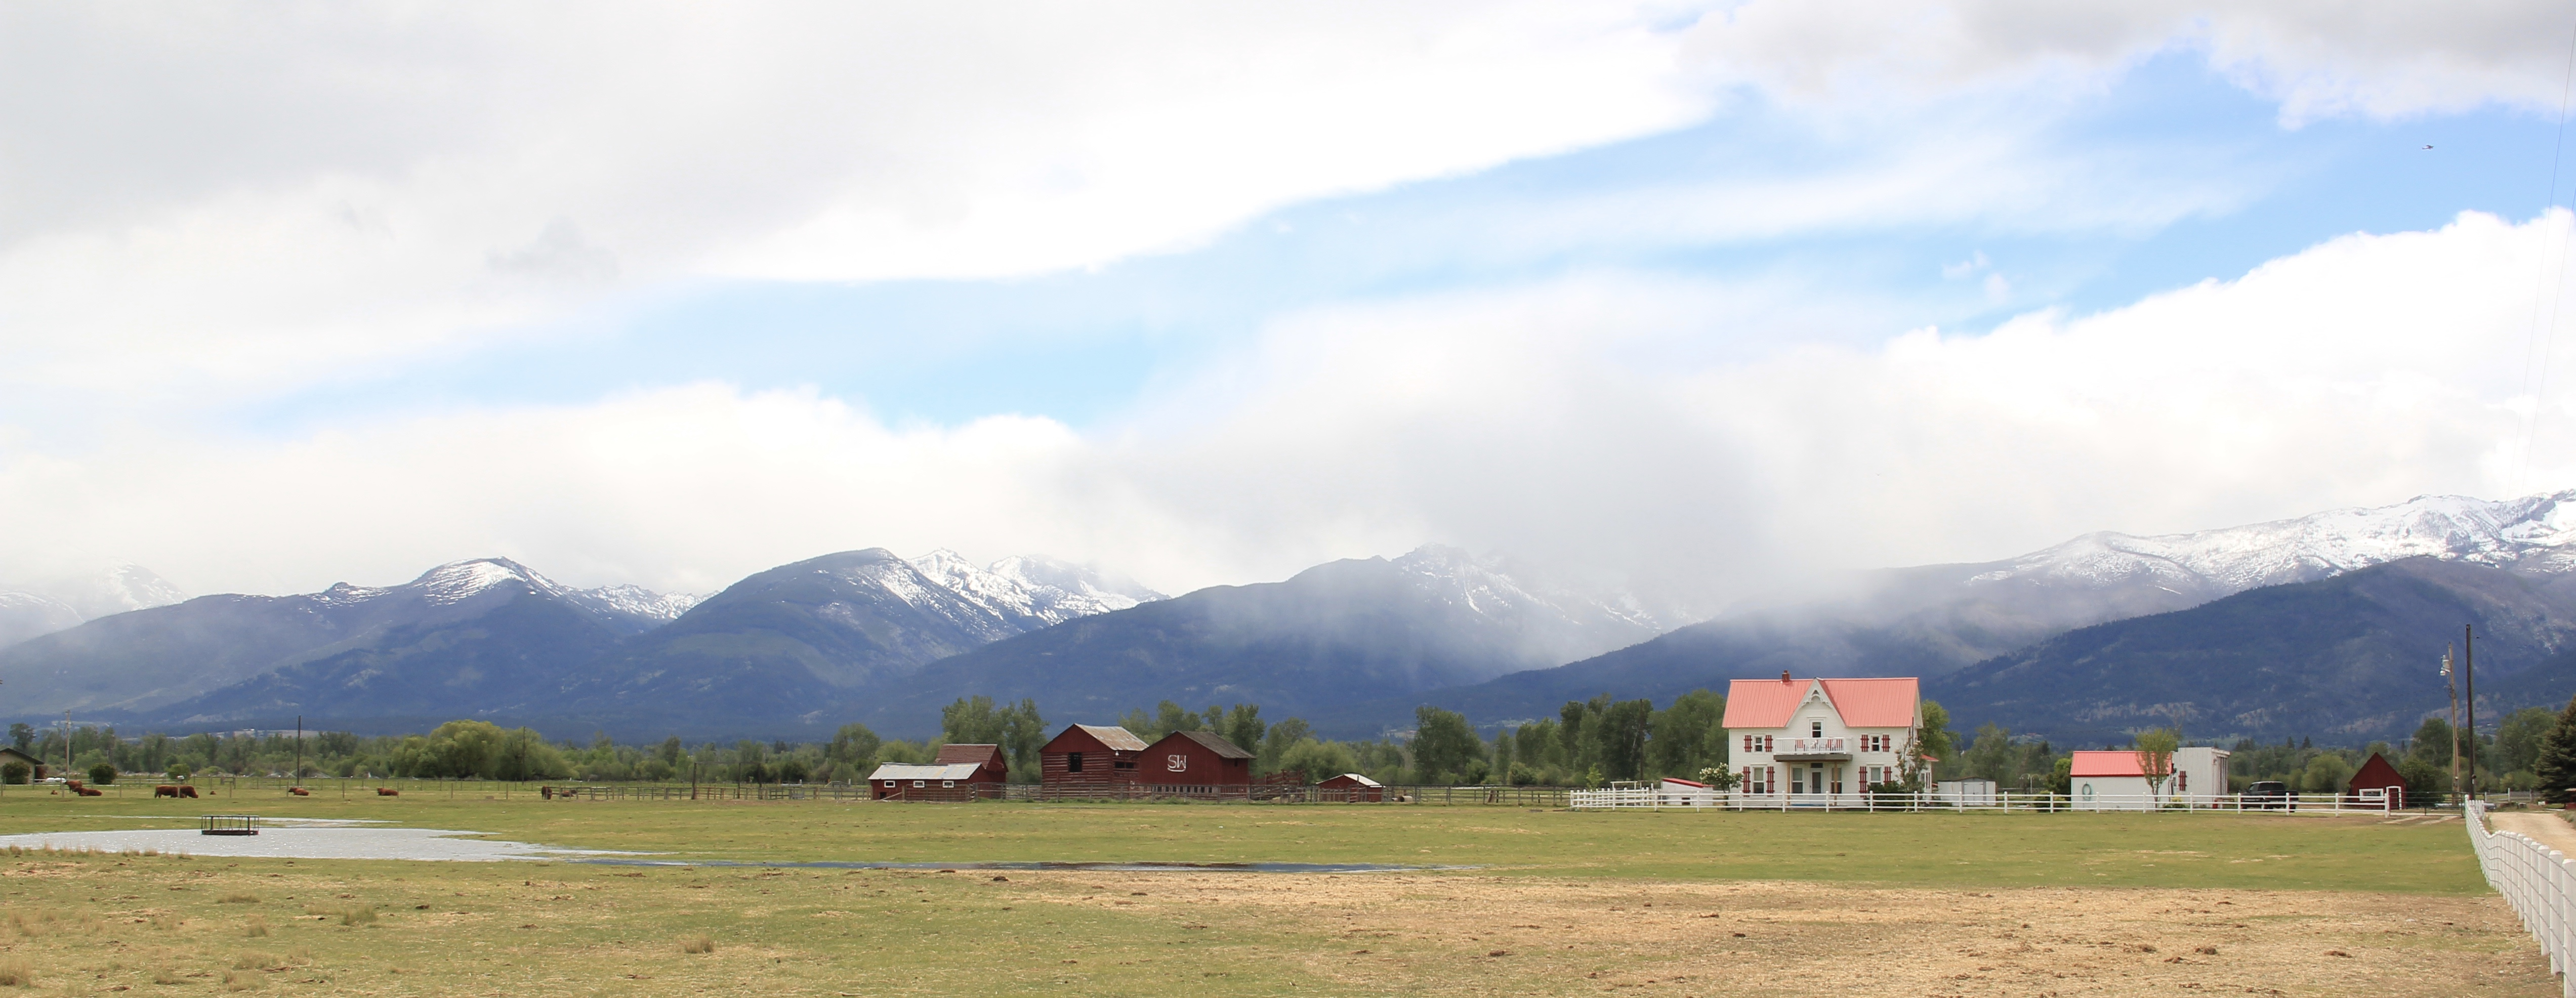 Lazy Drive Ranch at Eastside Hwy, Ravalli Co